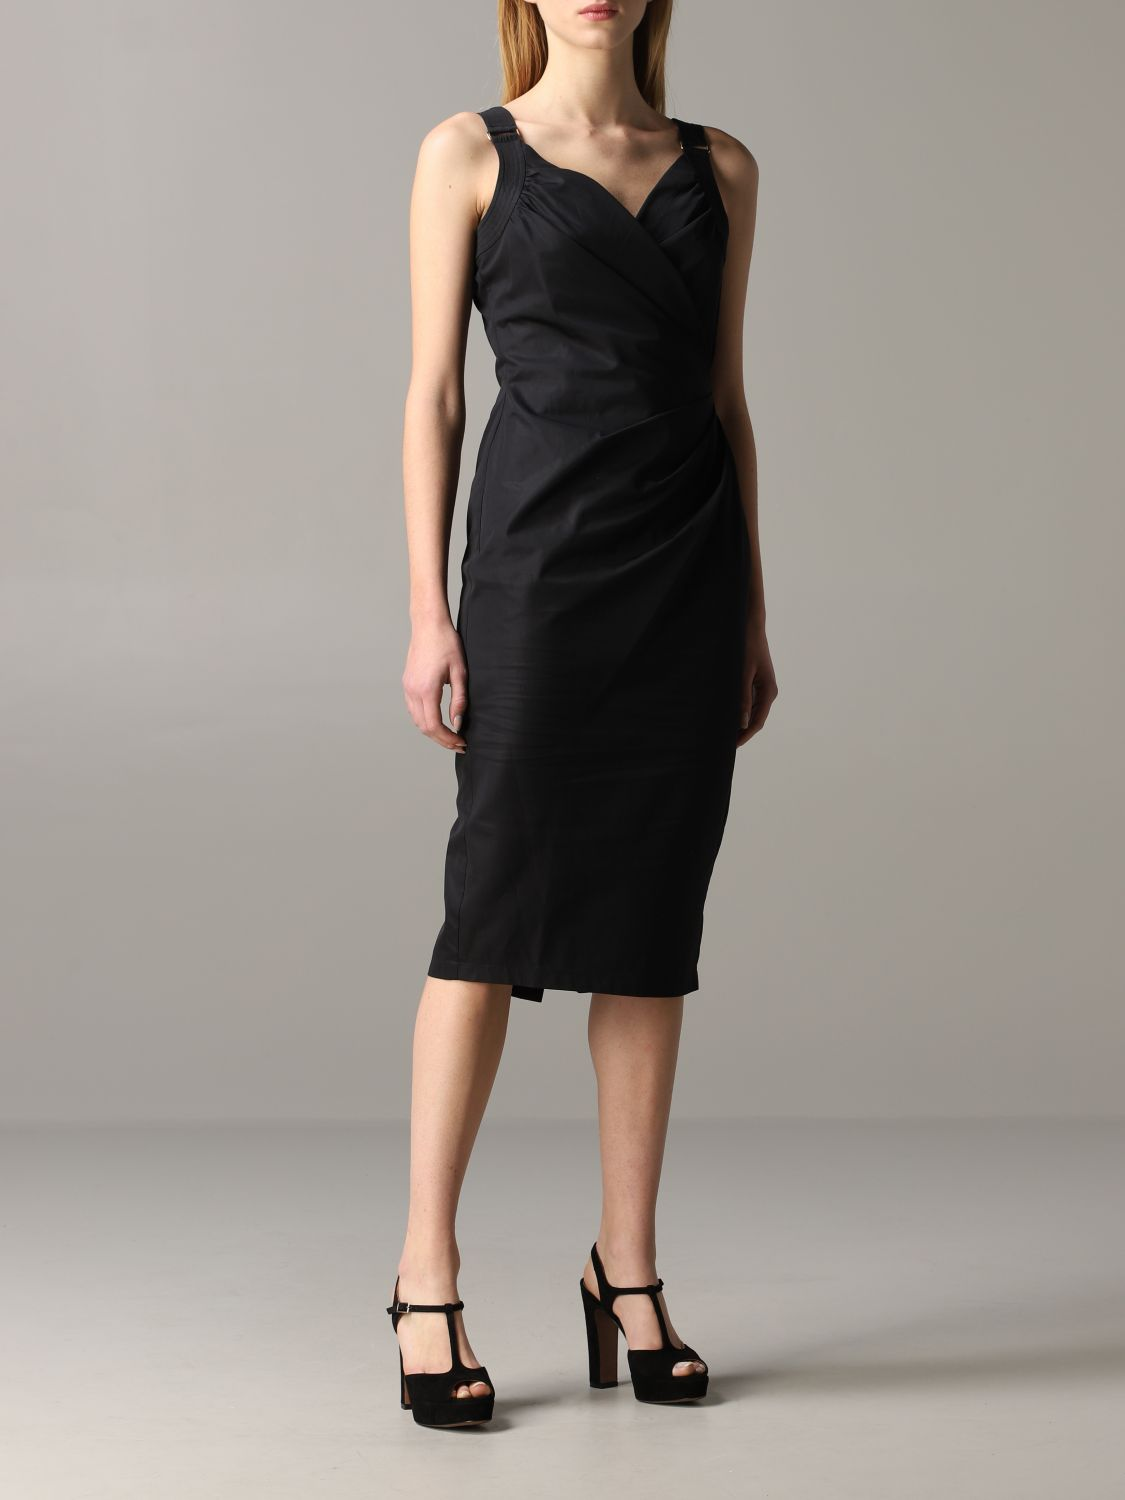 Max Mara draped dress black 1